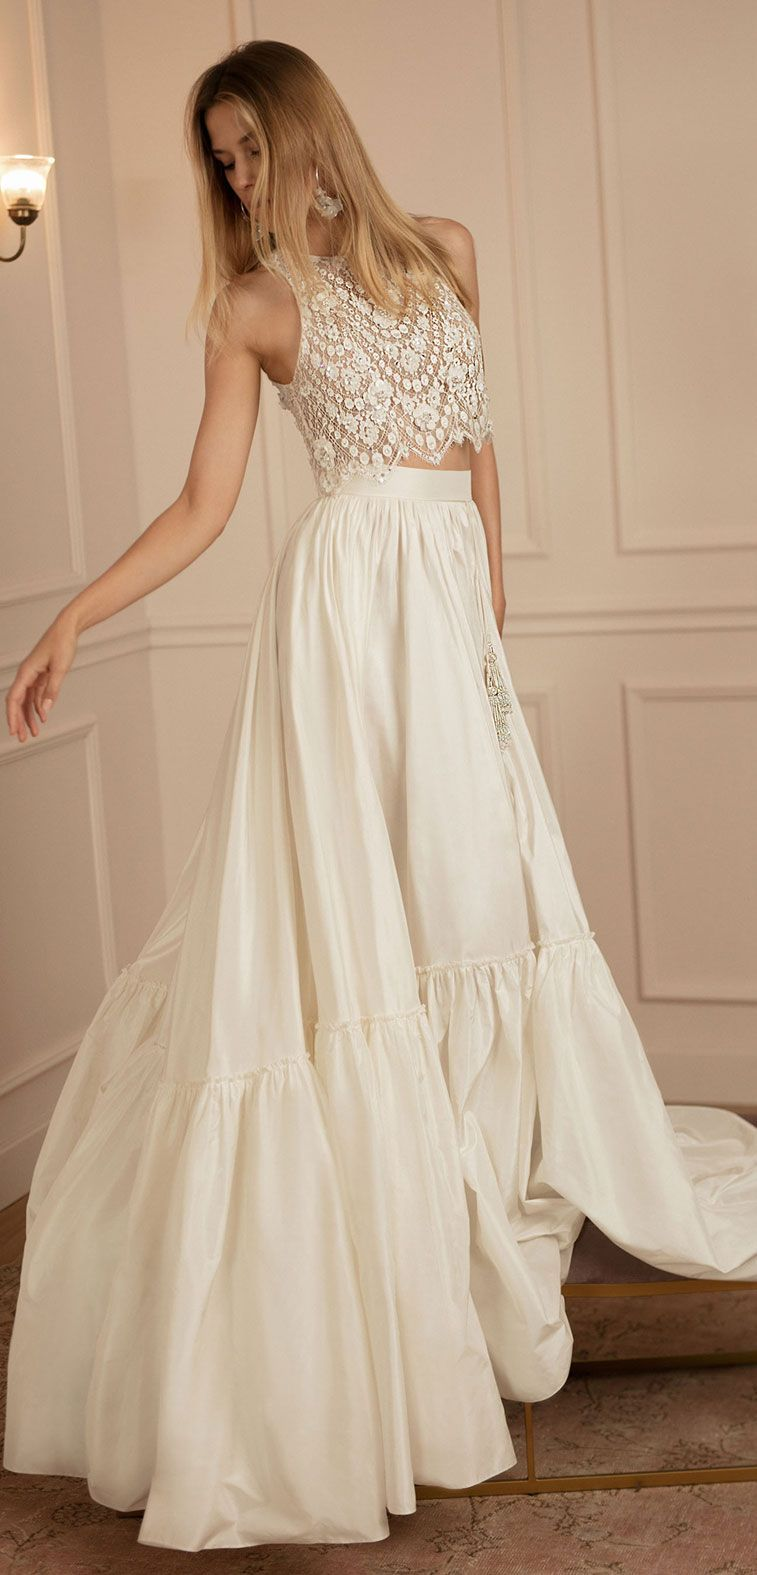 Wedding Dress Inspiration Two piece wedding dress